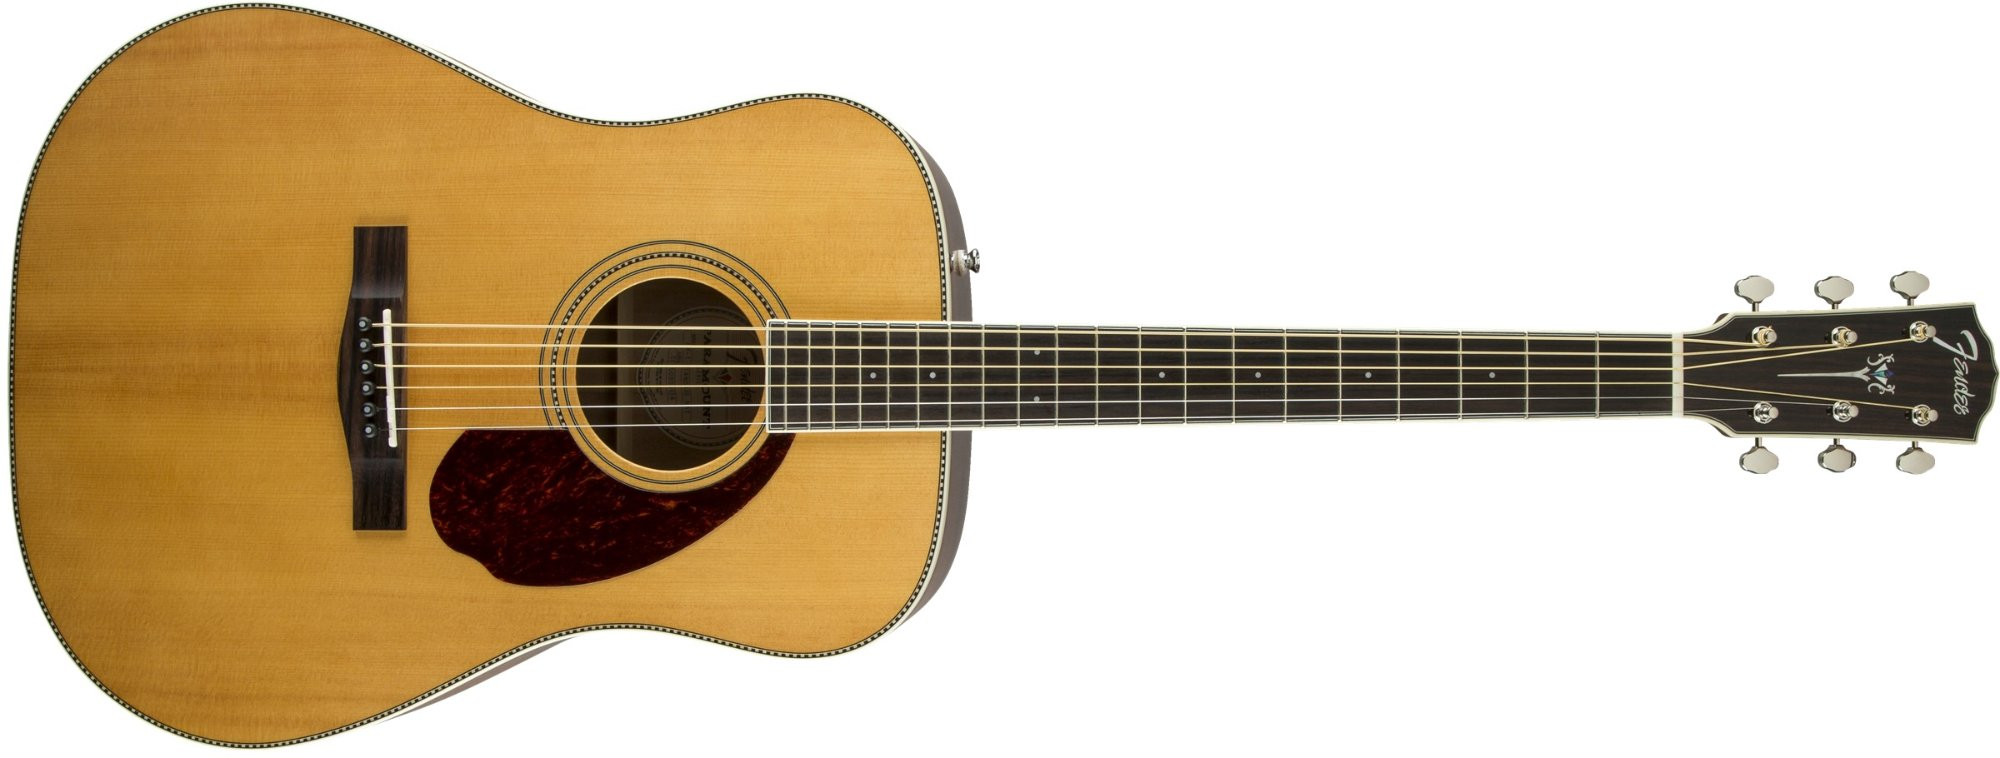 Fender PM-1 Standard Dreadnought [DISPLAY MODEL] Paramount Series Dreadnought Acoustic Guitar with Rosewood Fingerboard PM1-STD-RSW-DIS